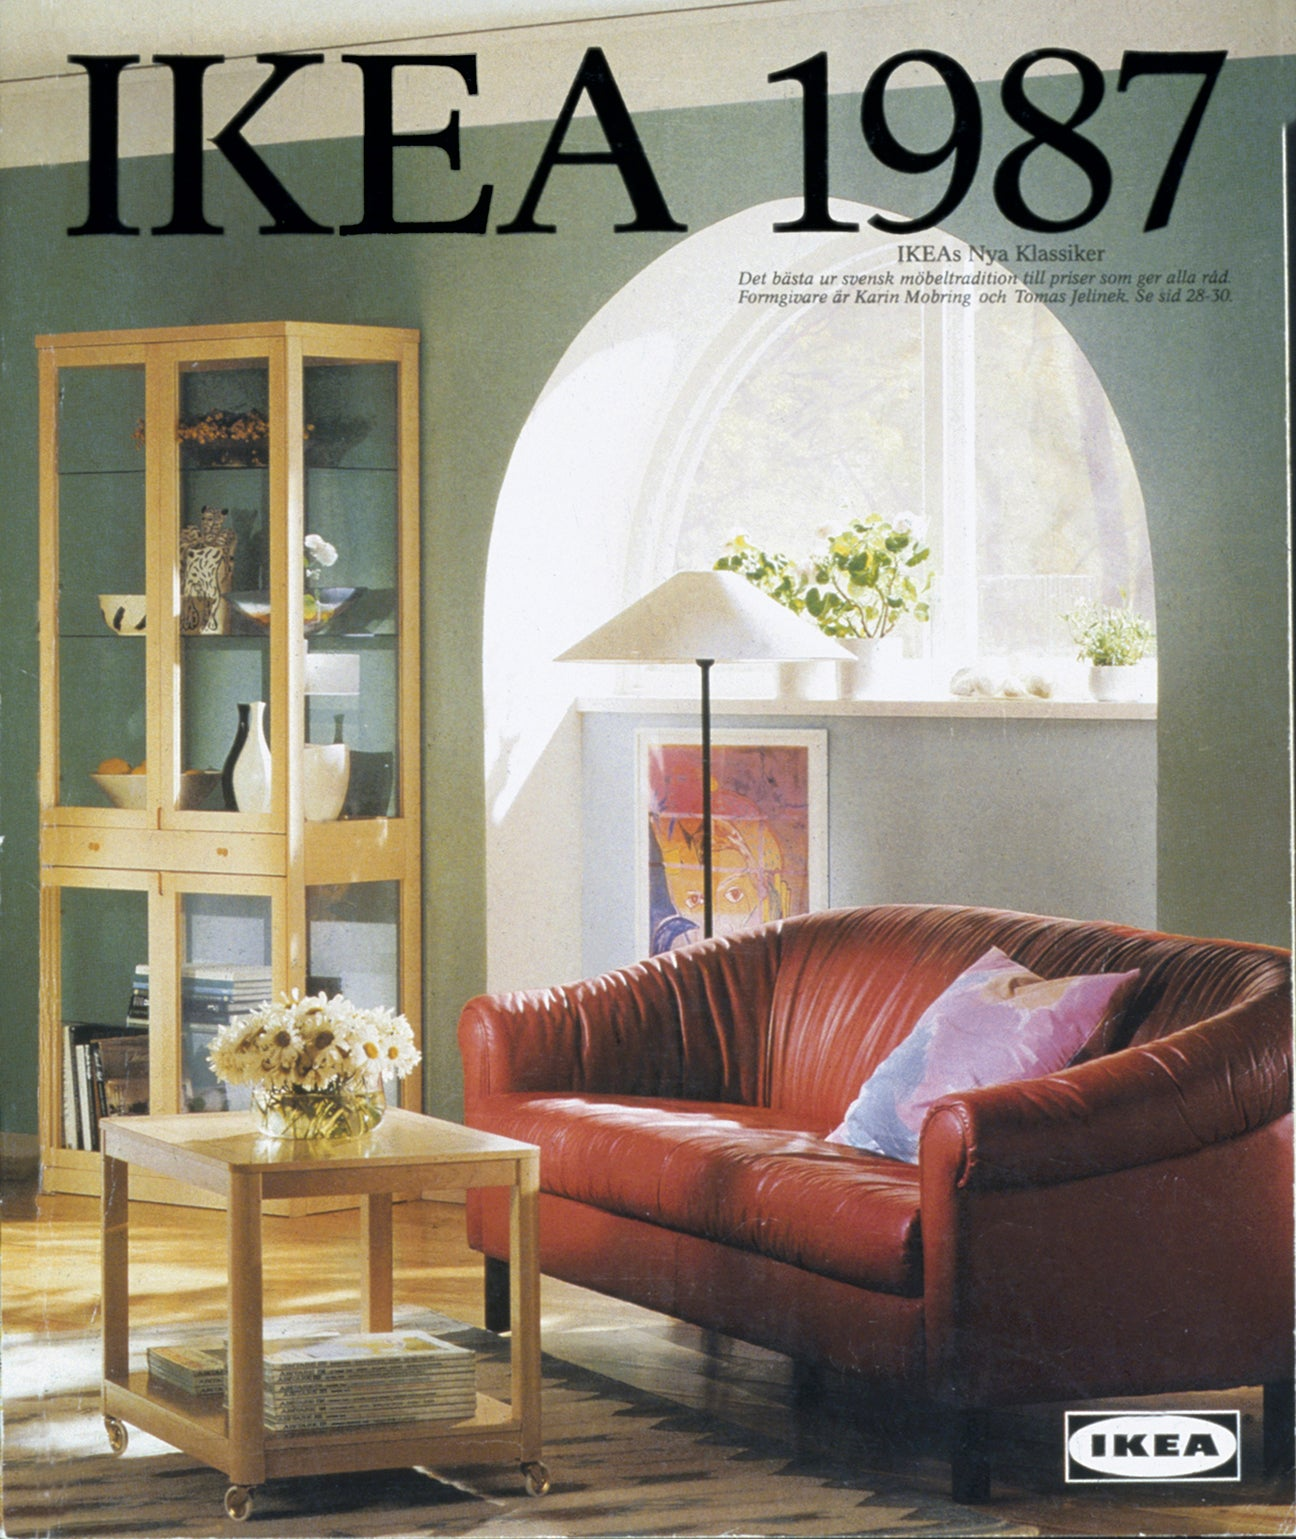 old ikea catalogue cover with arched window nook